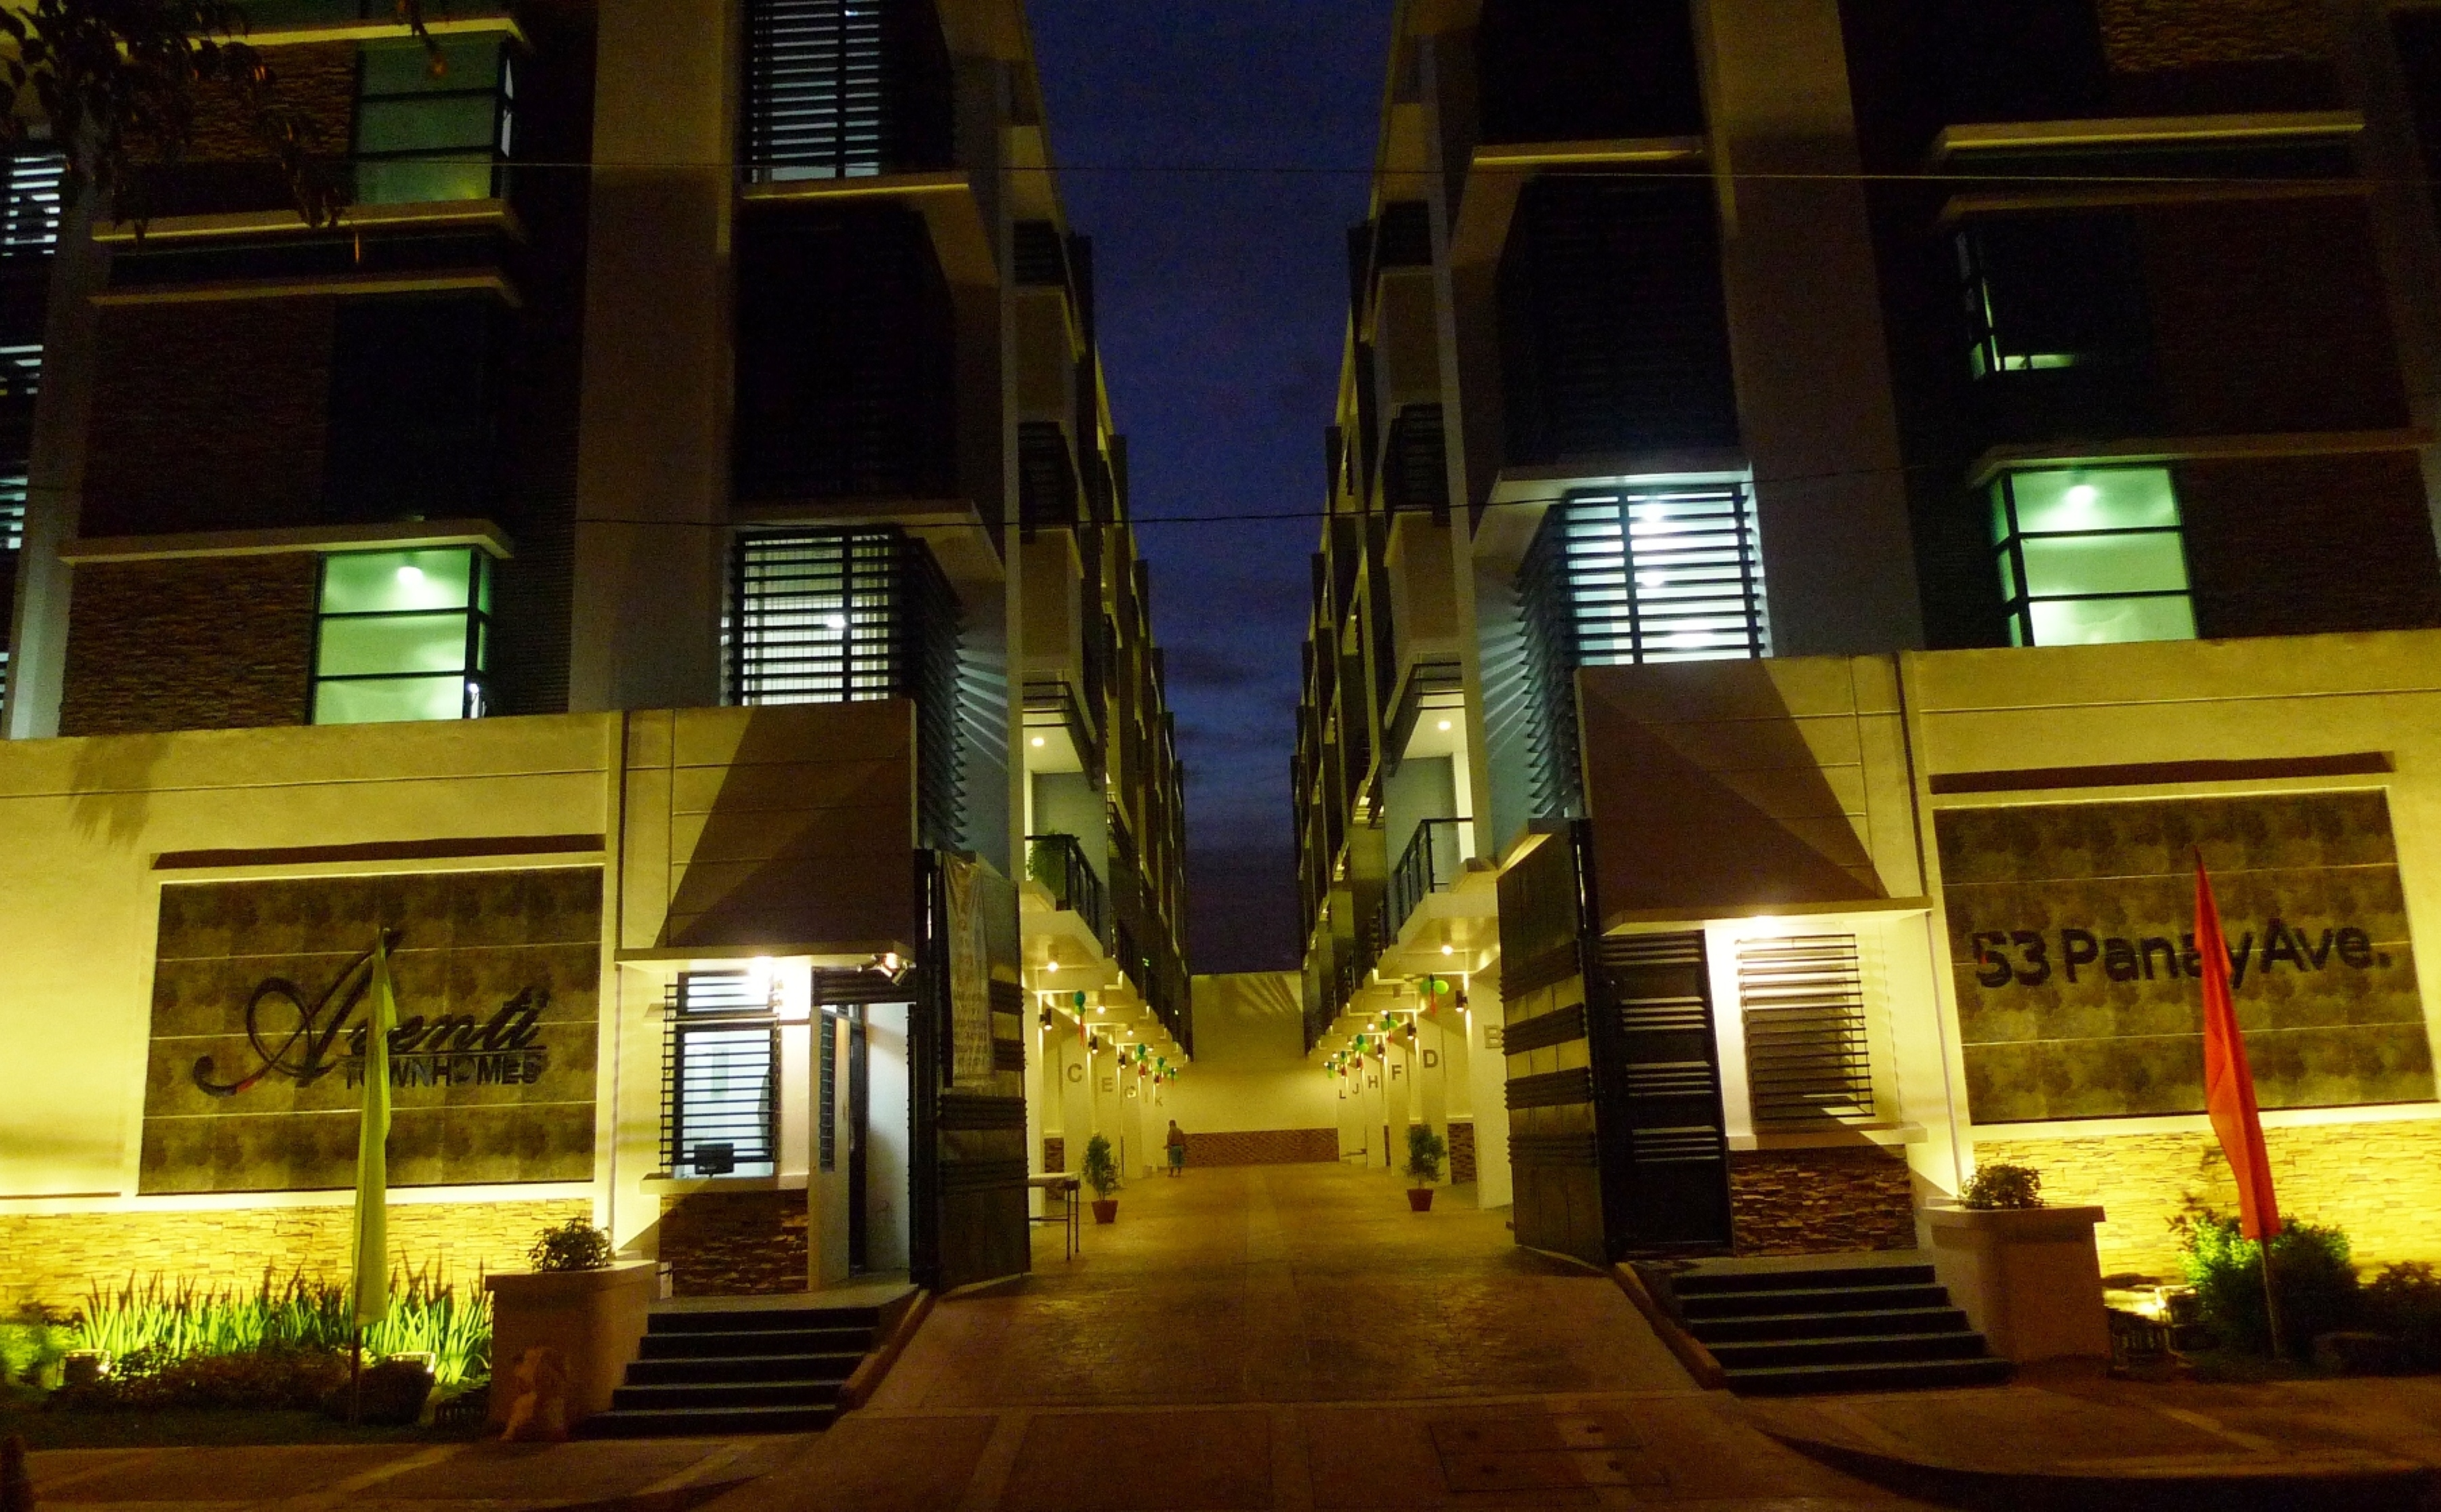 Night View of Aventi Townhomes